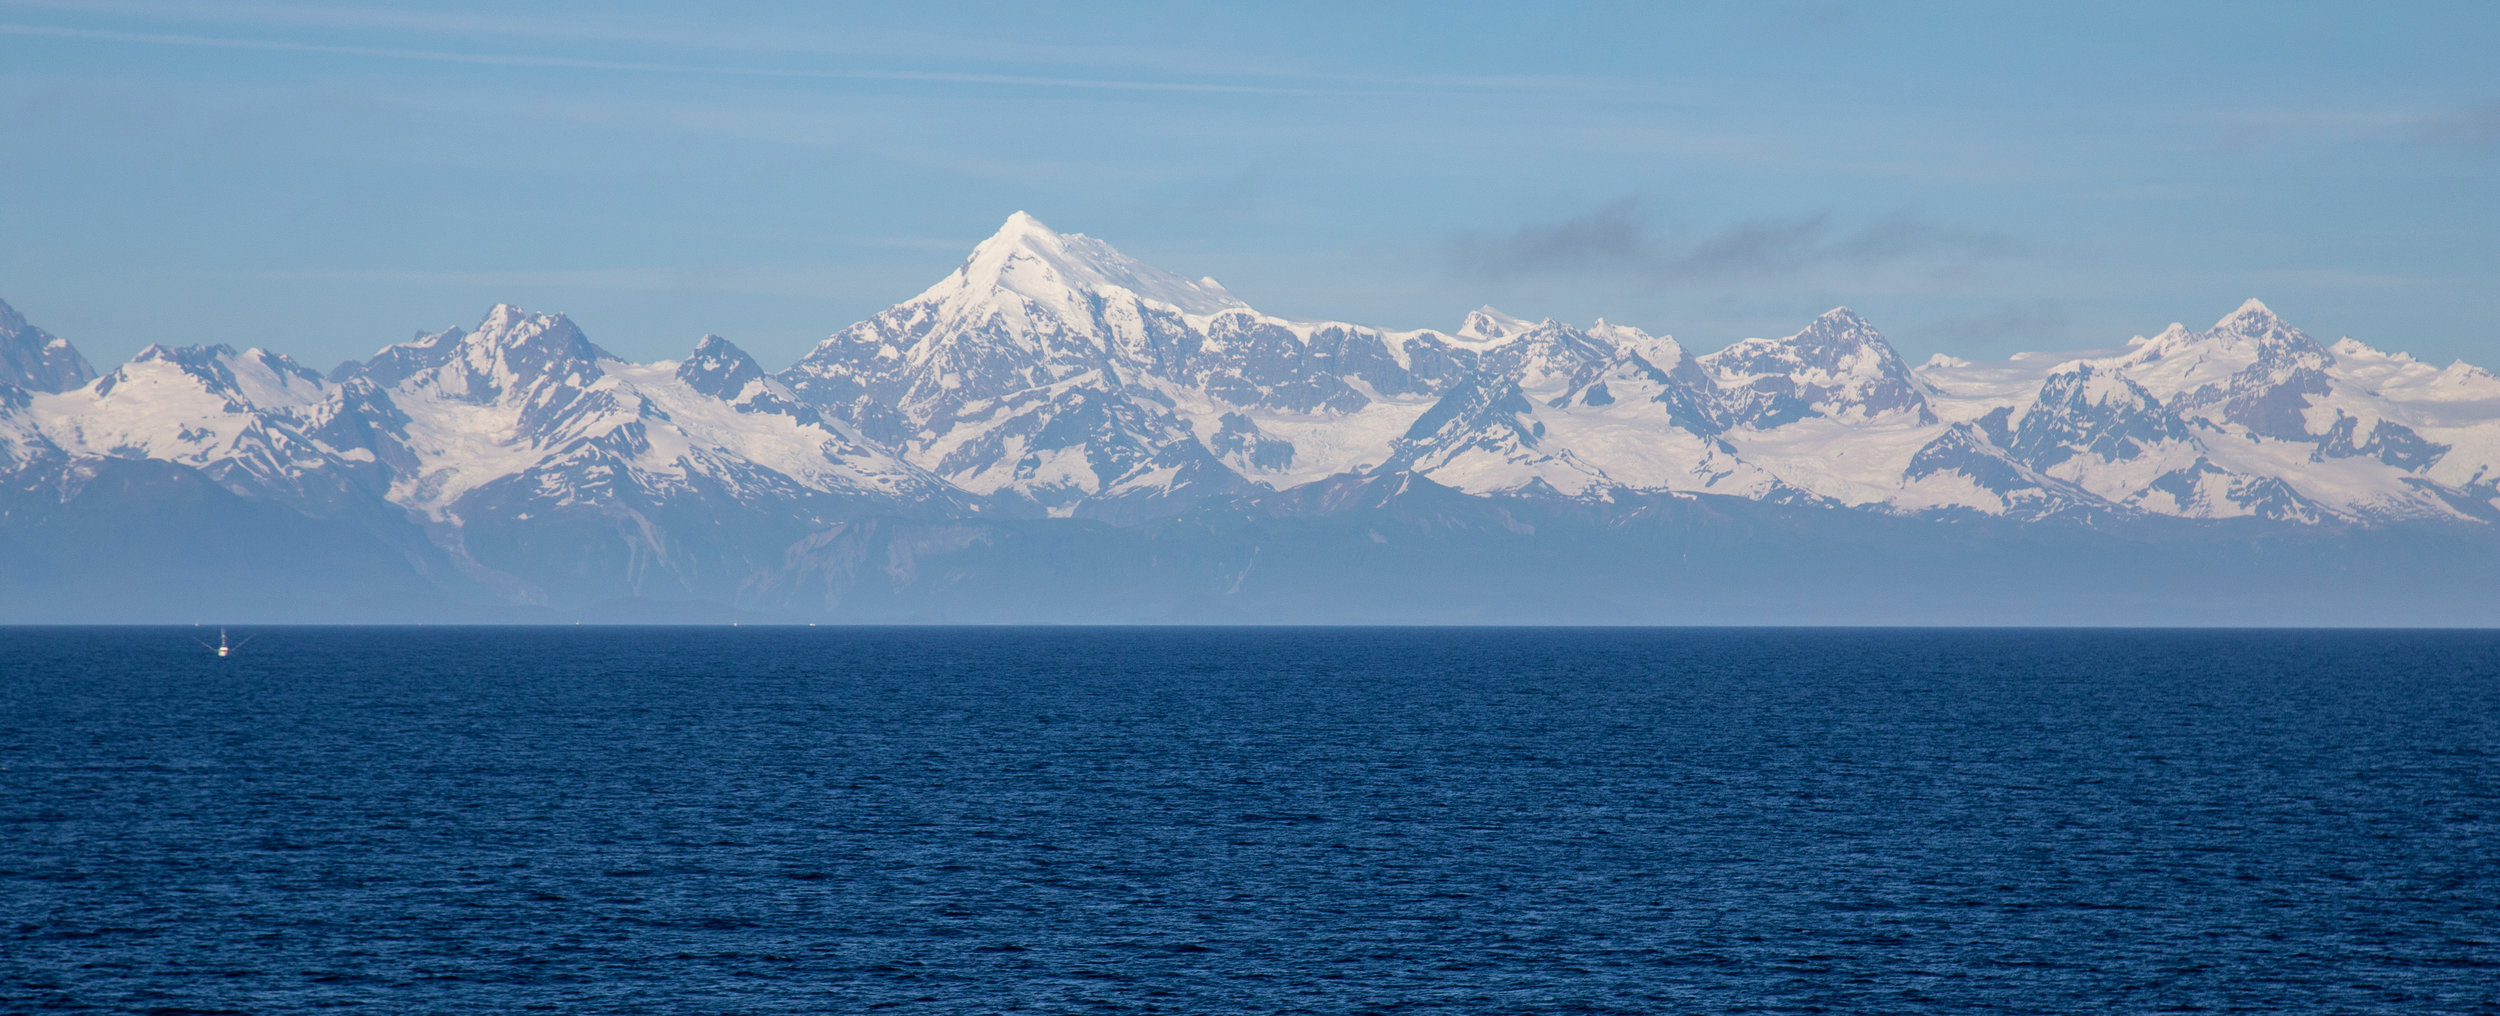 As we headed back towards Juneau, Mount Fairweather dominated the views.